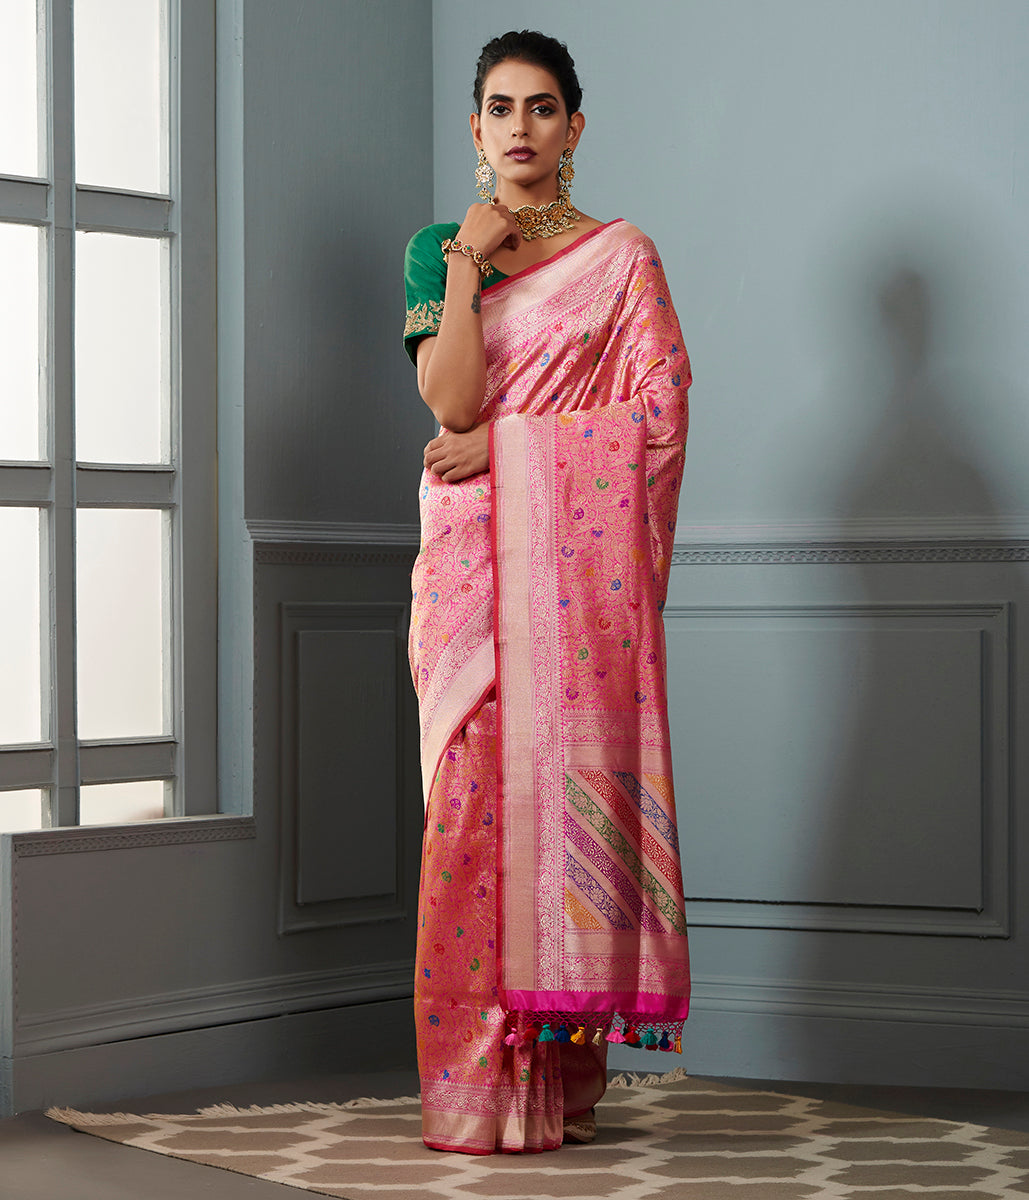 Pink and gold meenakari kimkhab saree with a bright pink selvedge